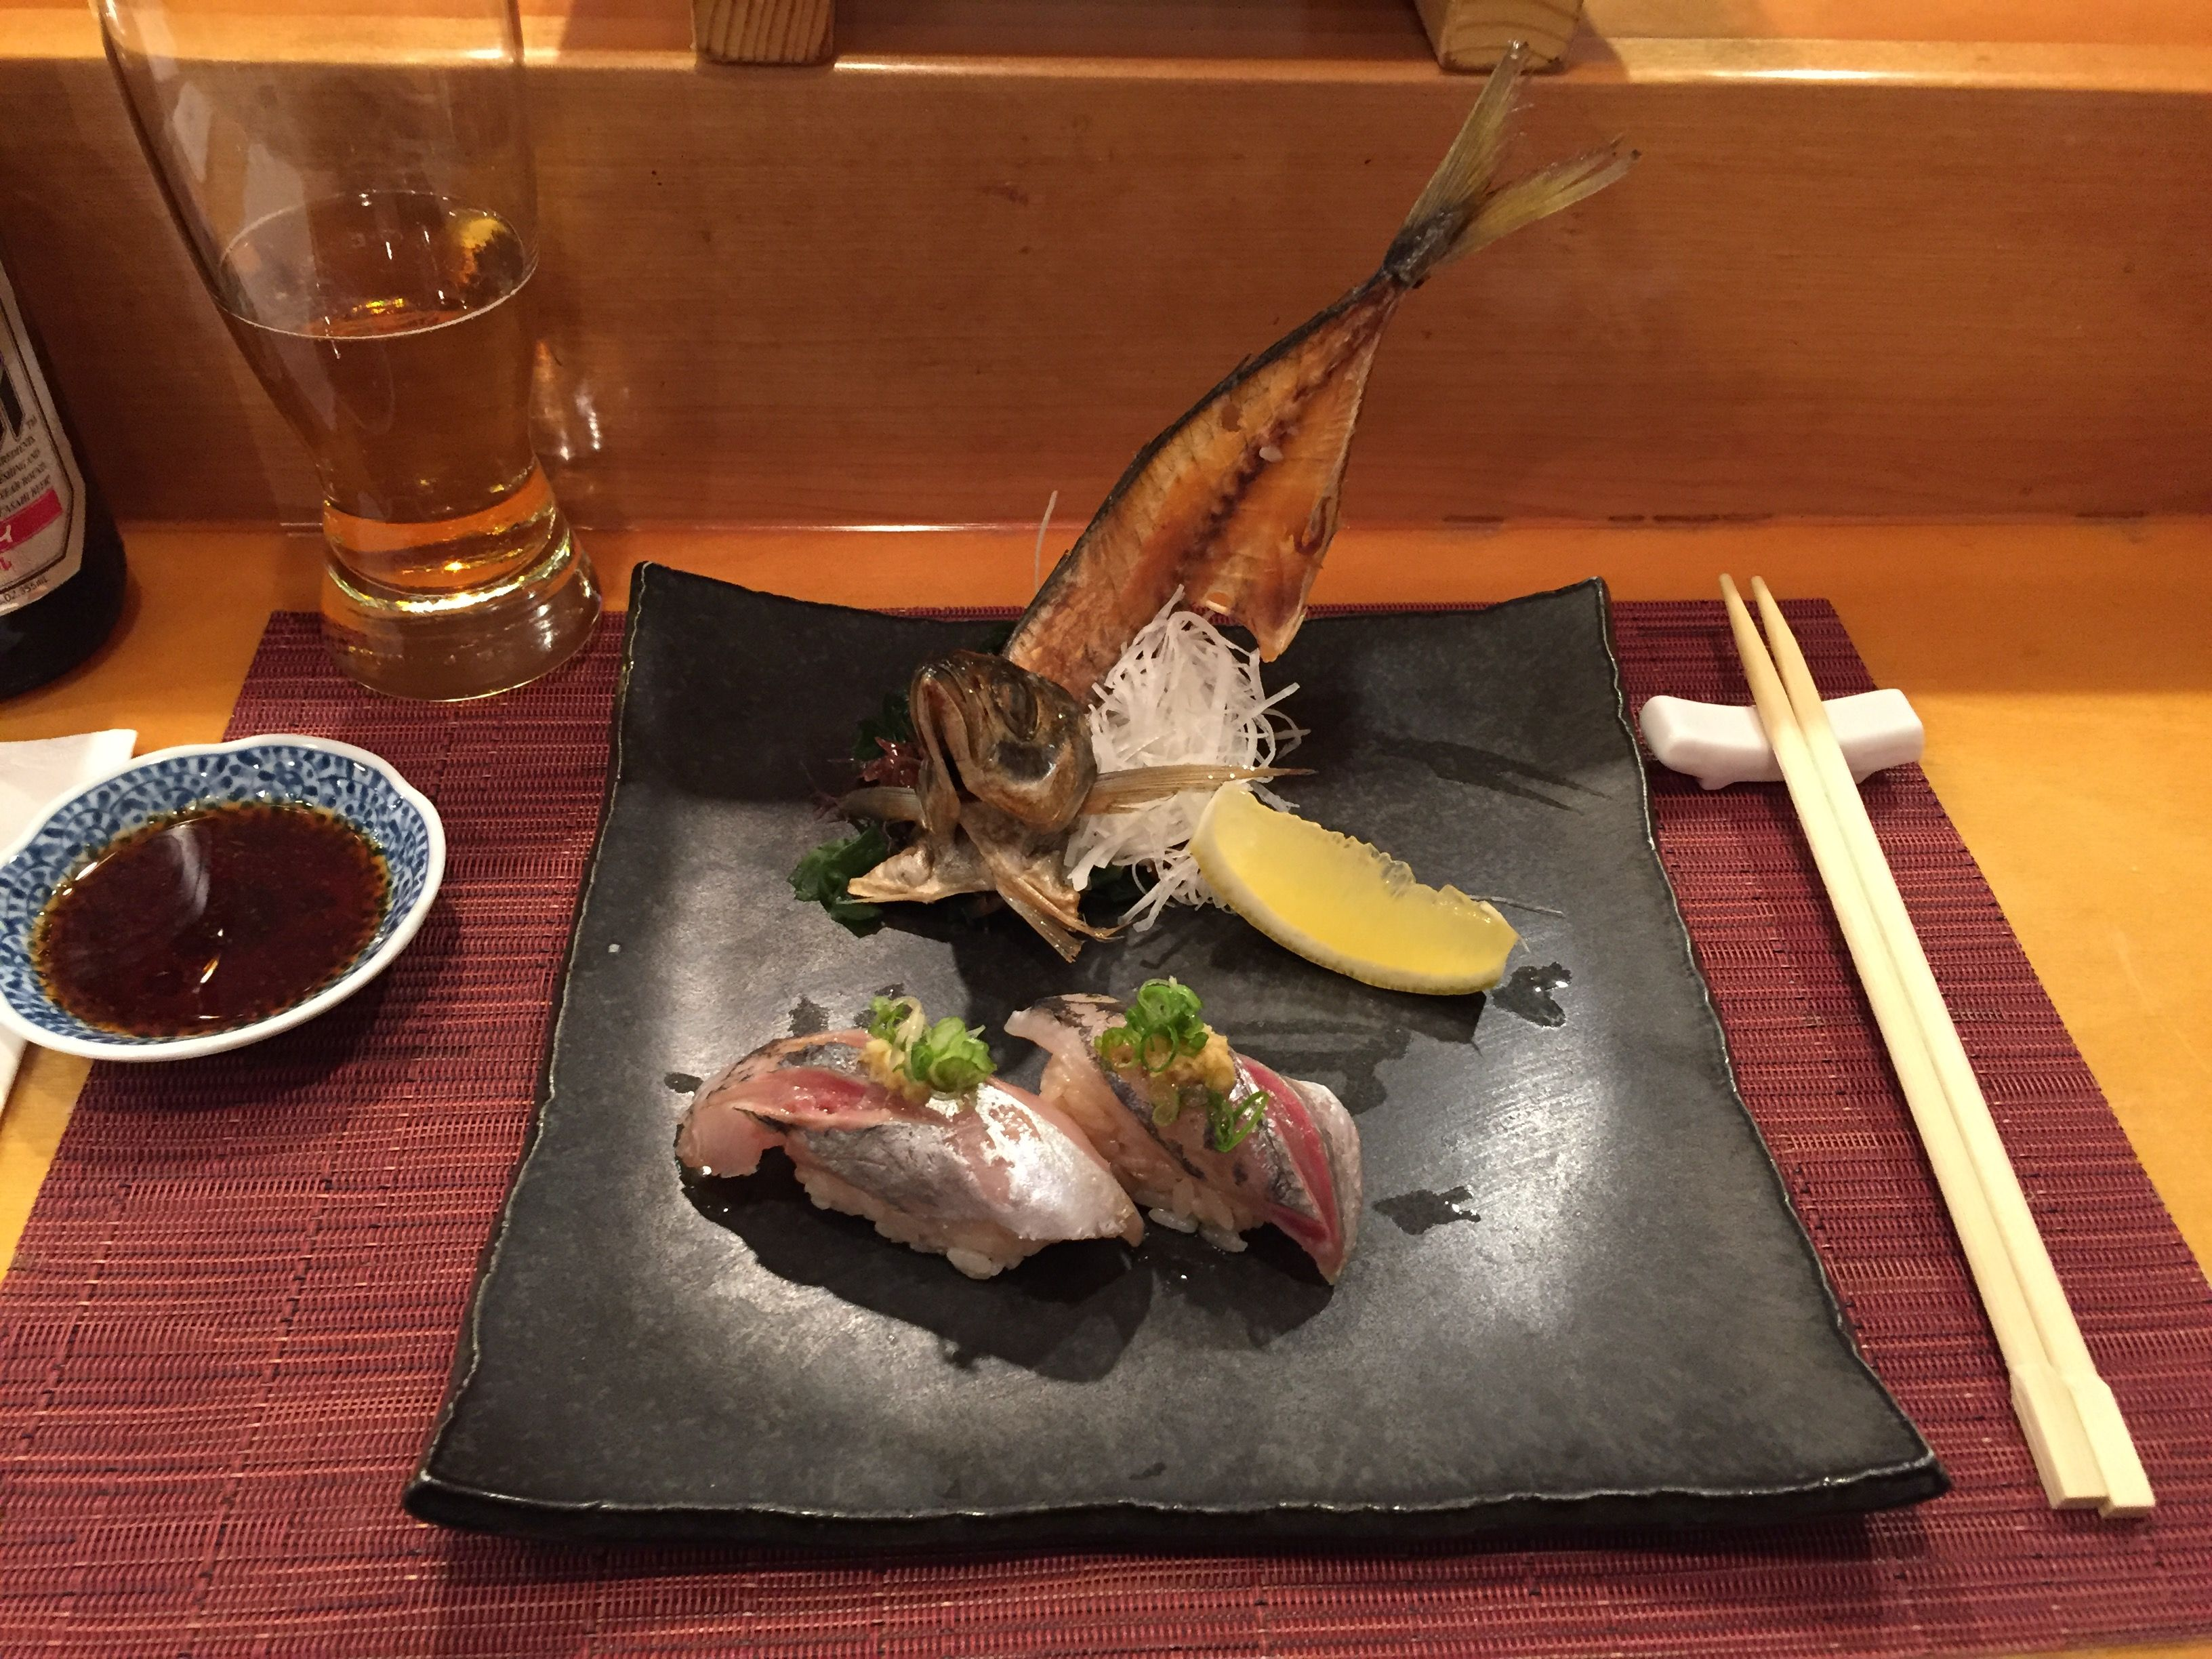 [I ate] Spanish Mackerel Nigiri #recipes #food #cooking #delicious #foodie #foodrecipes #cook #recipe #health